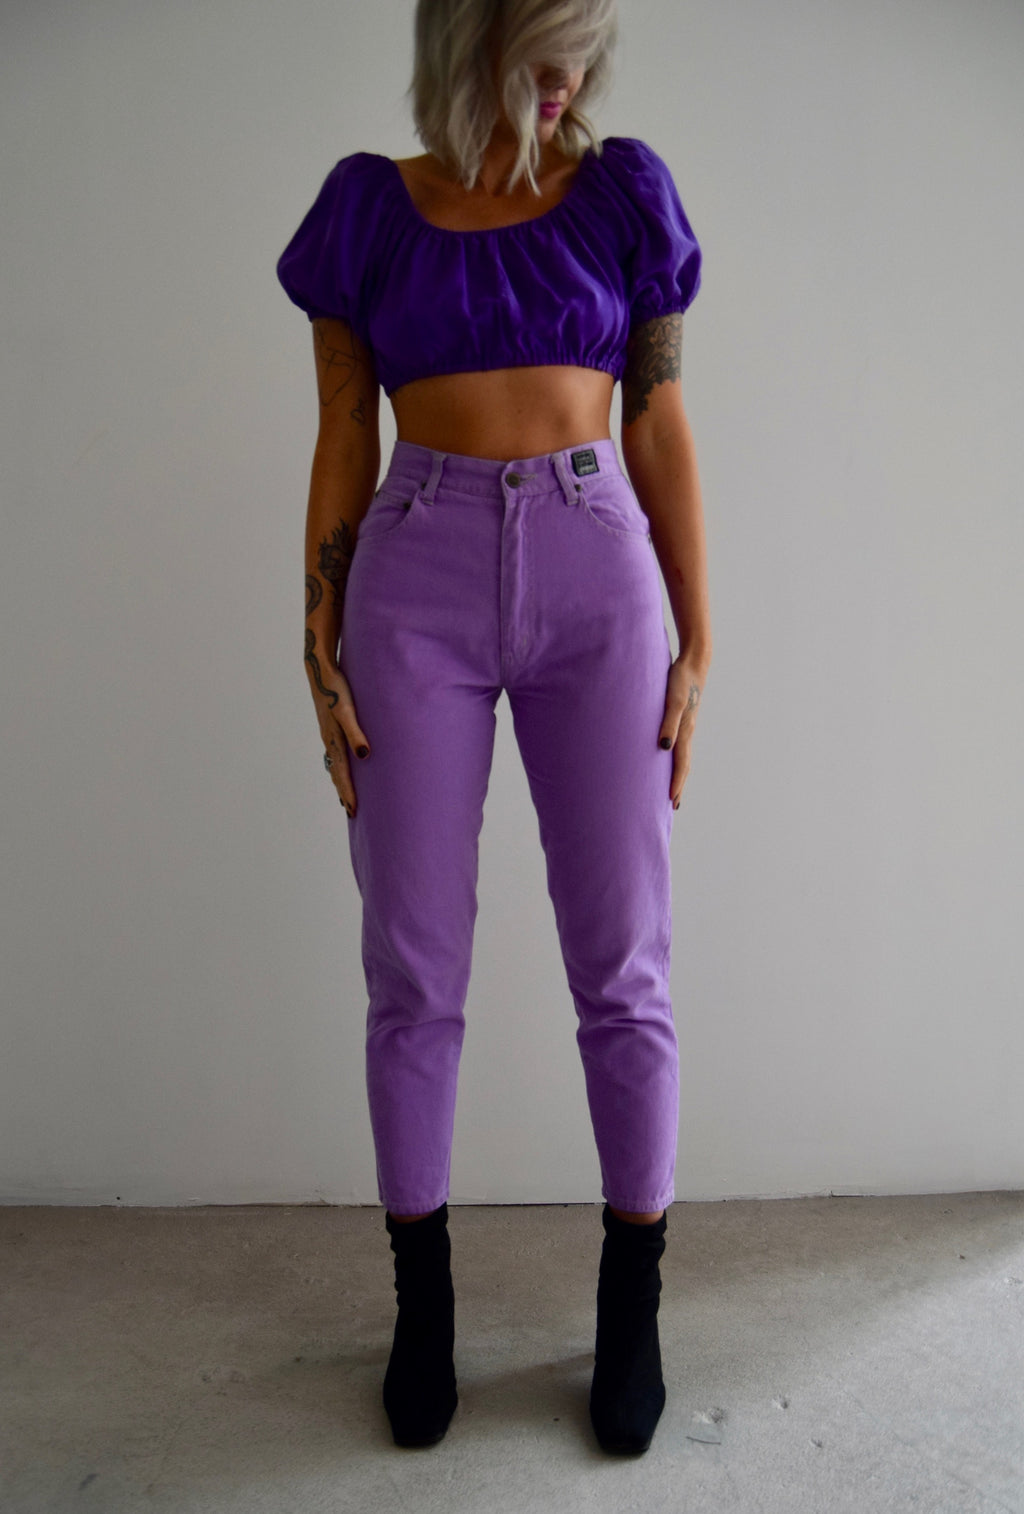 Versace Couture Rich Lavender Jeans FREE SHIPPING